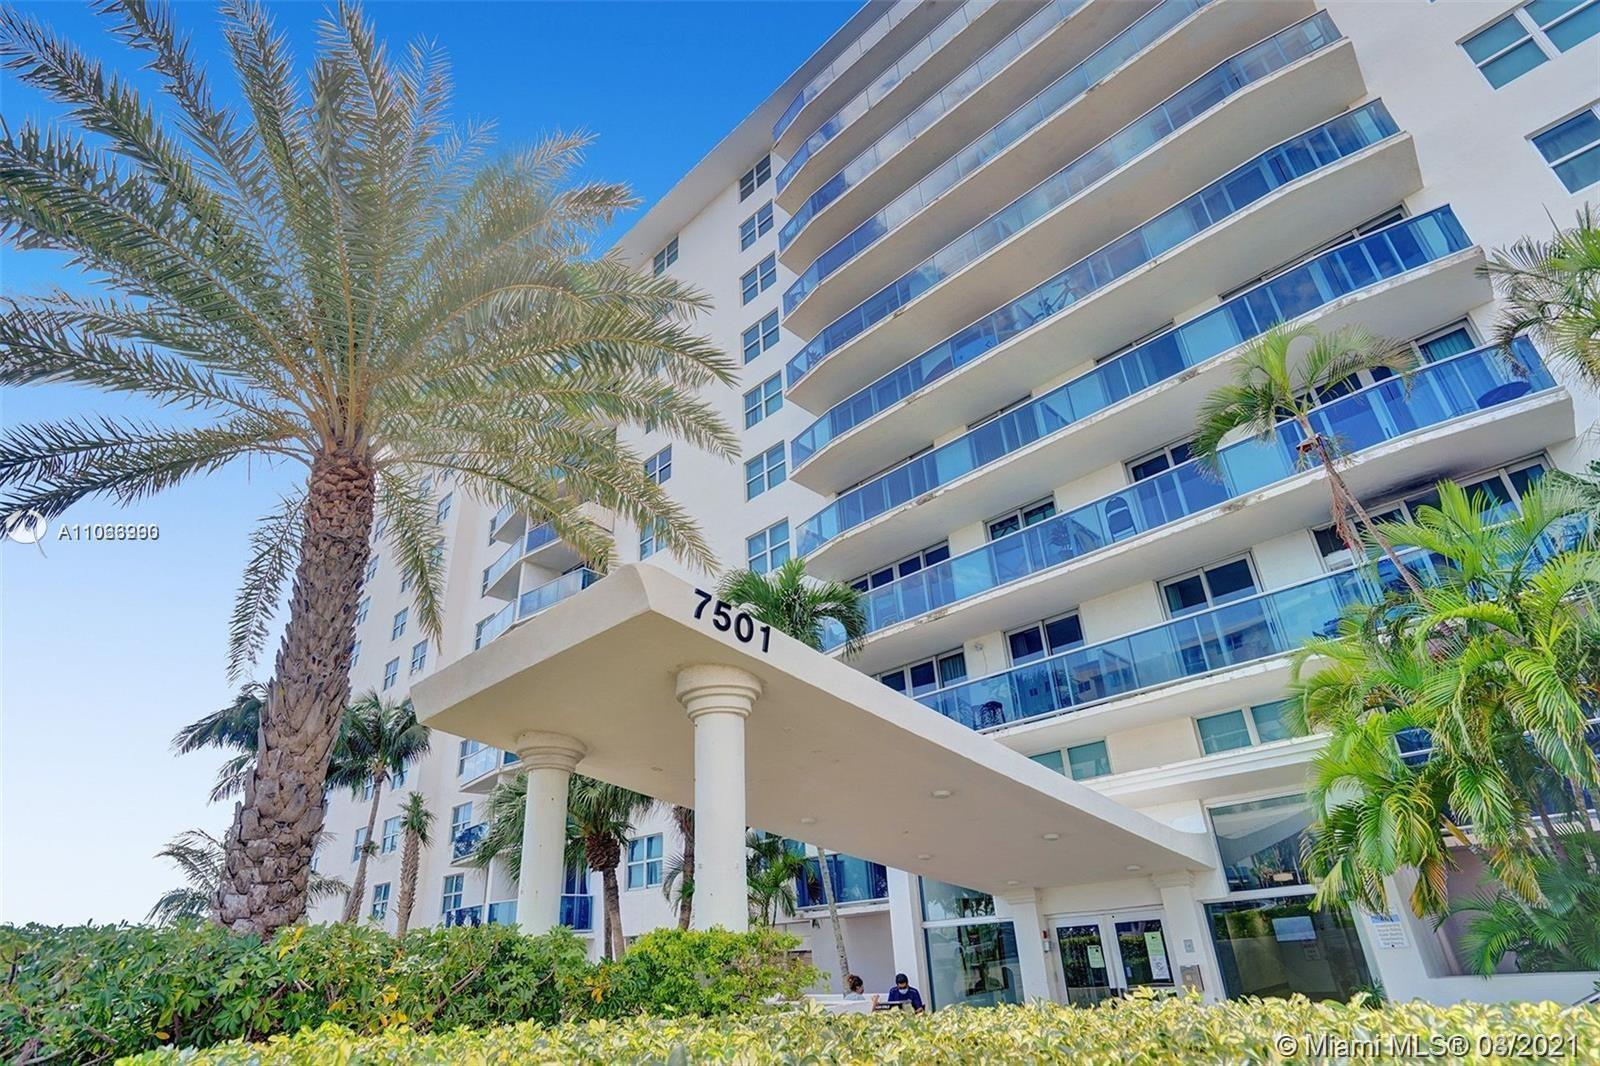 BEAUTIFUL AND WELL MAINTAINED UNIT WITH  GREAT VIEW OF BISCAYNE BAY. OPEN KITCHEN WITH STAINLESS STE